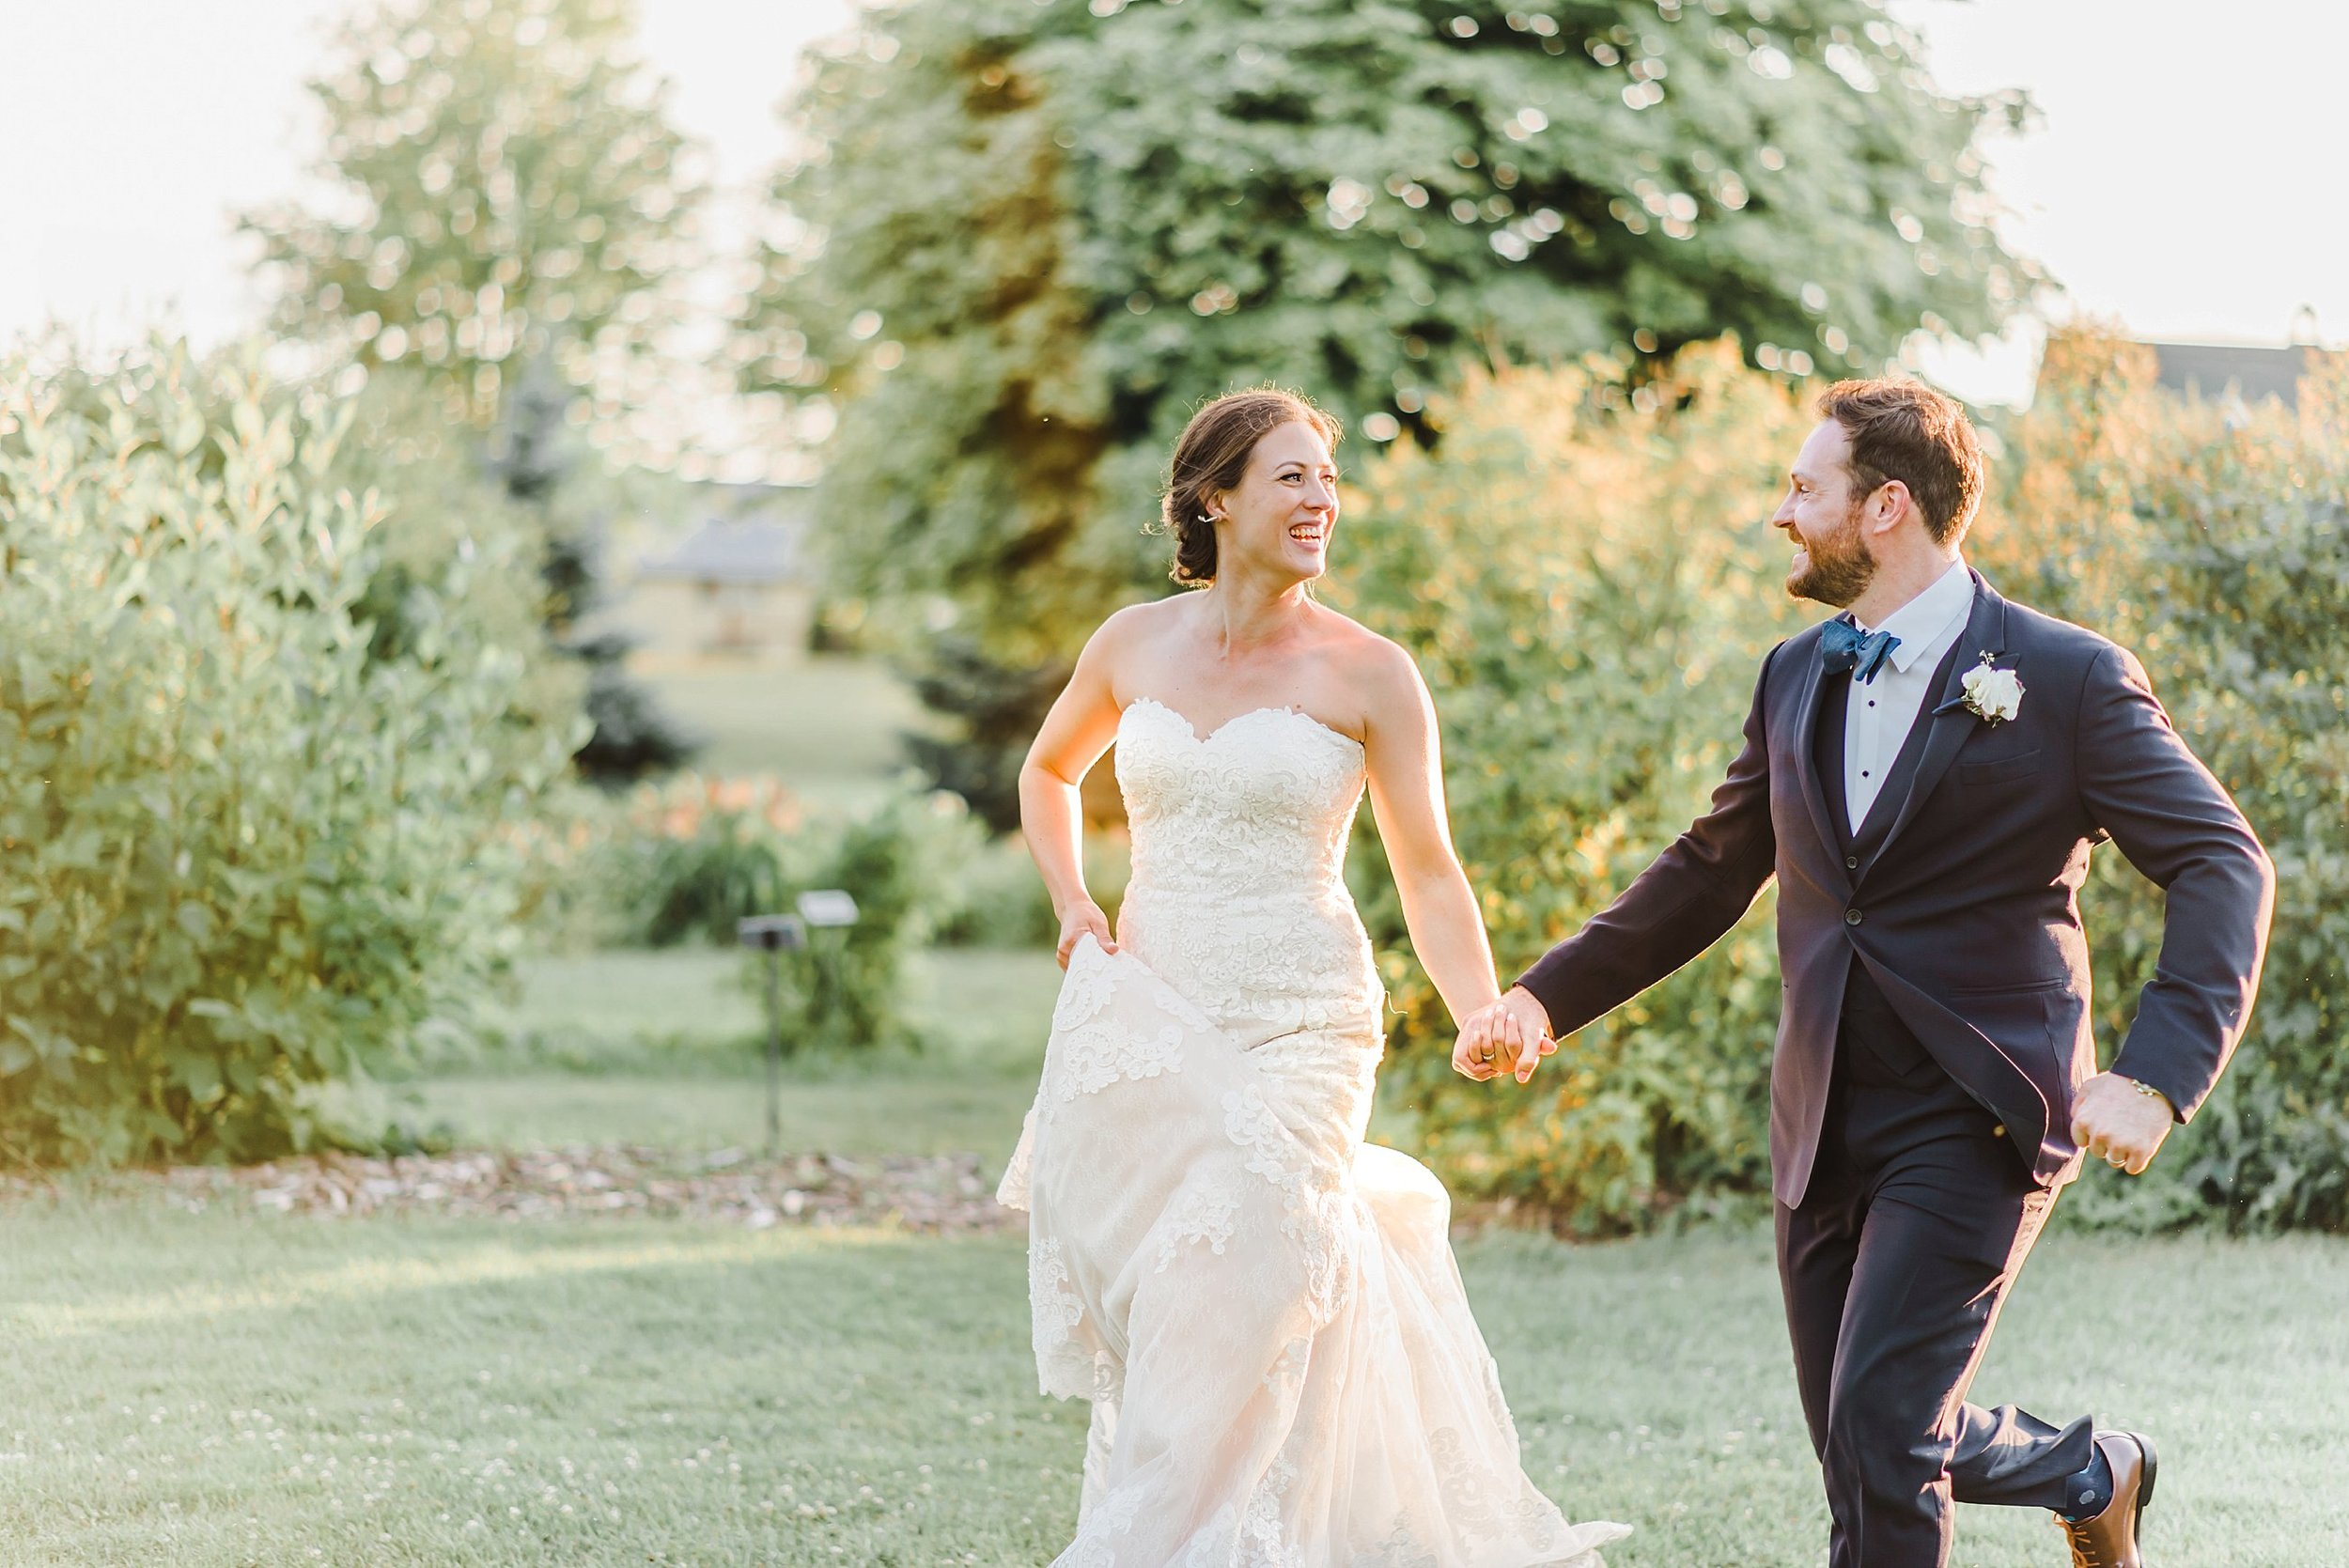 When sunset approached, we had a few minutes to run off on the grounds to capture these fleeting 'just married' moments between the two.  We were blessed with a golden glowy sky.